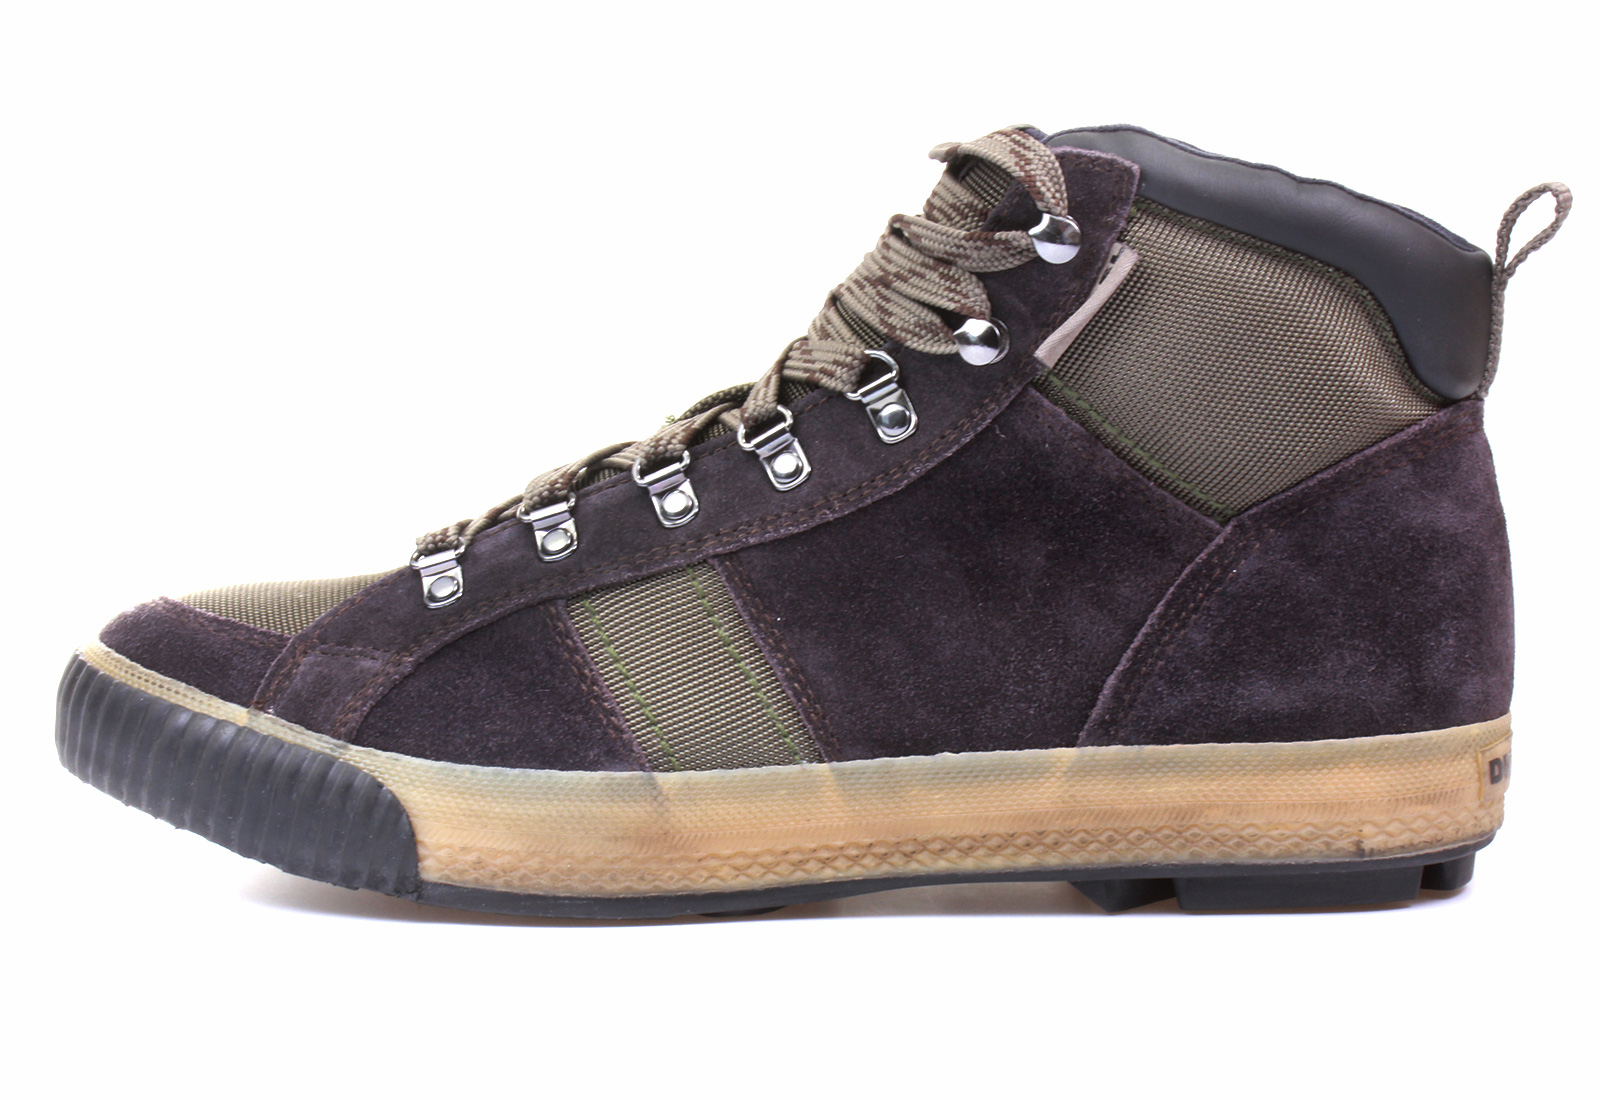 Diesel Shoes - Wil - 806-118-8010 - Online shop for ...